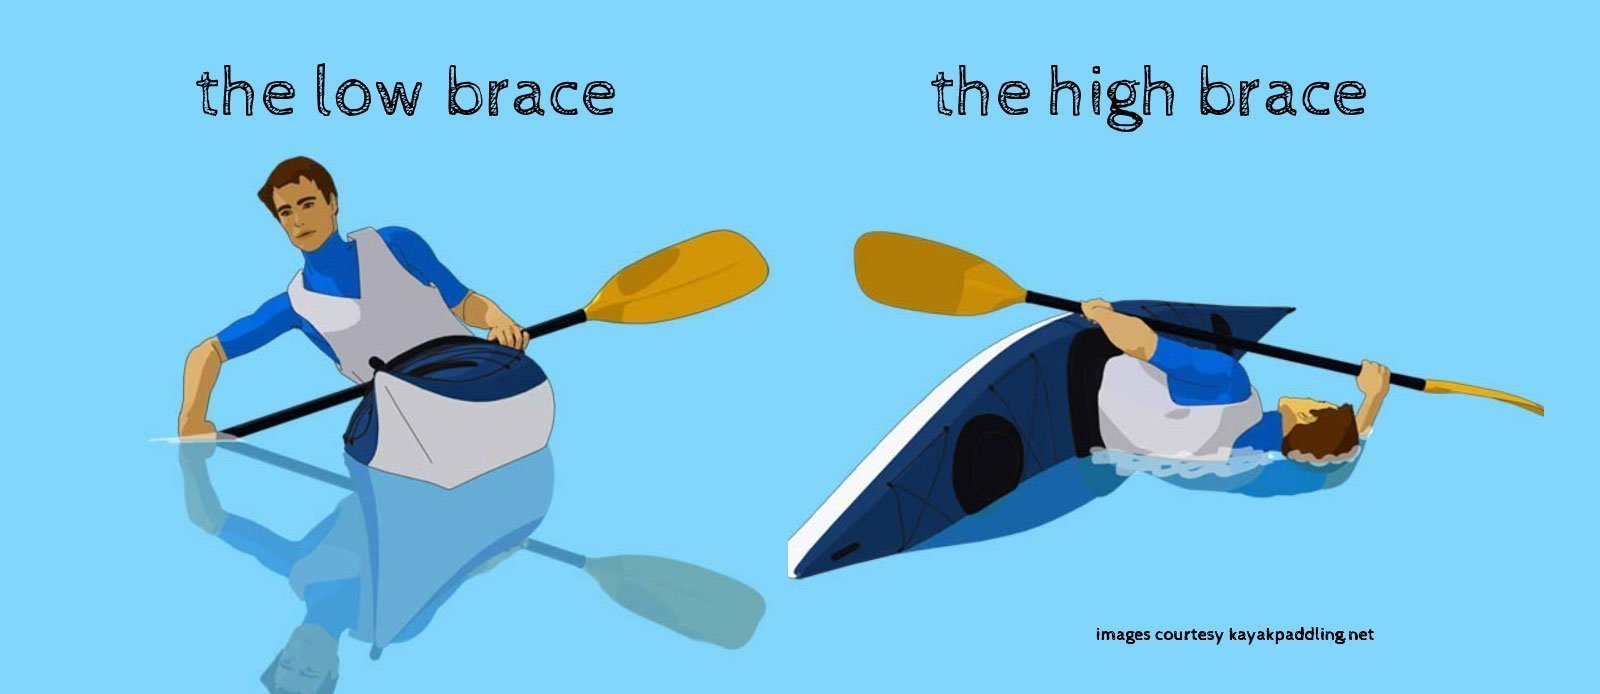 sea kayak low and high brace stroke